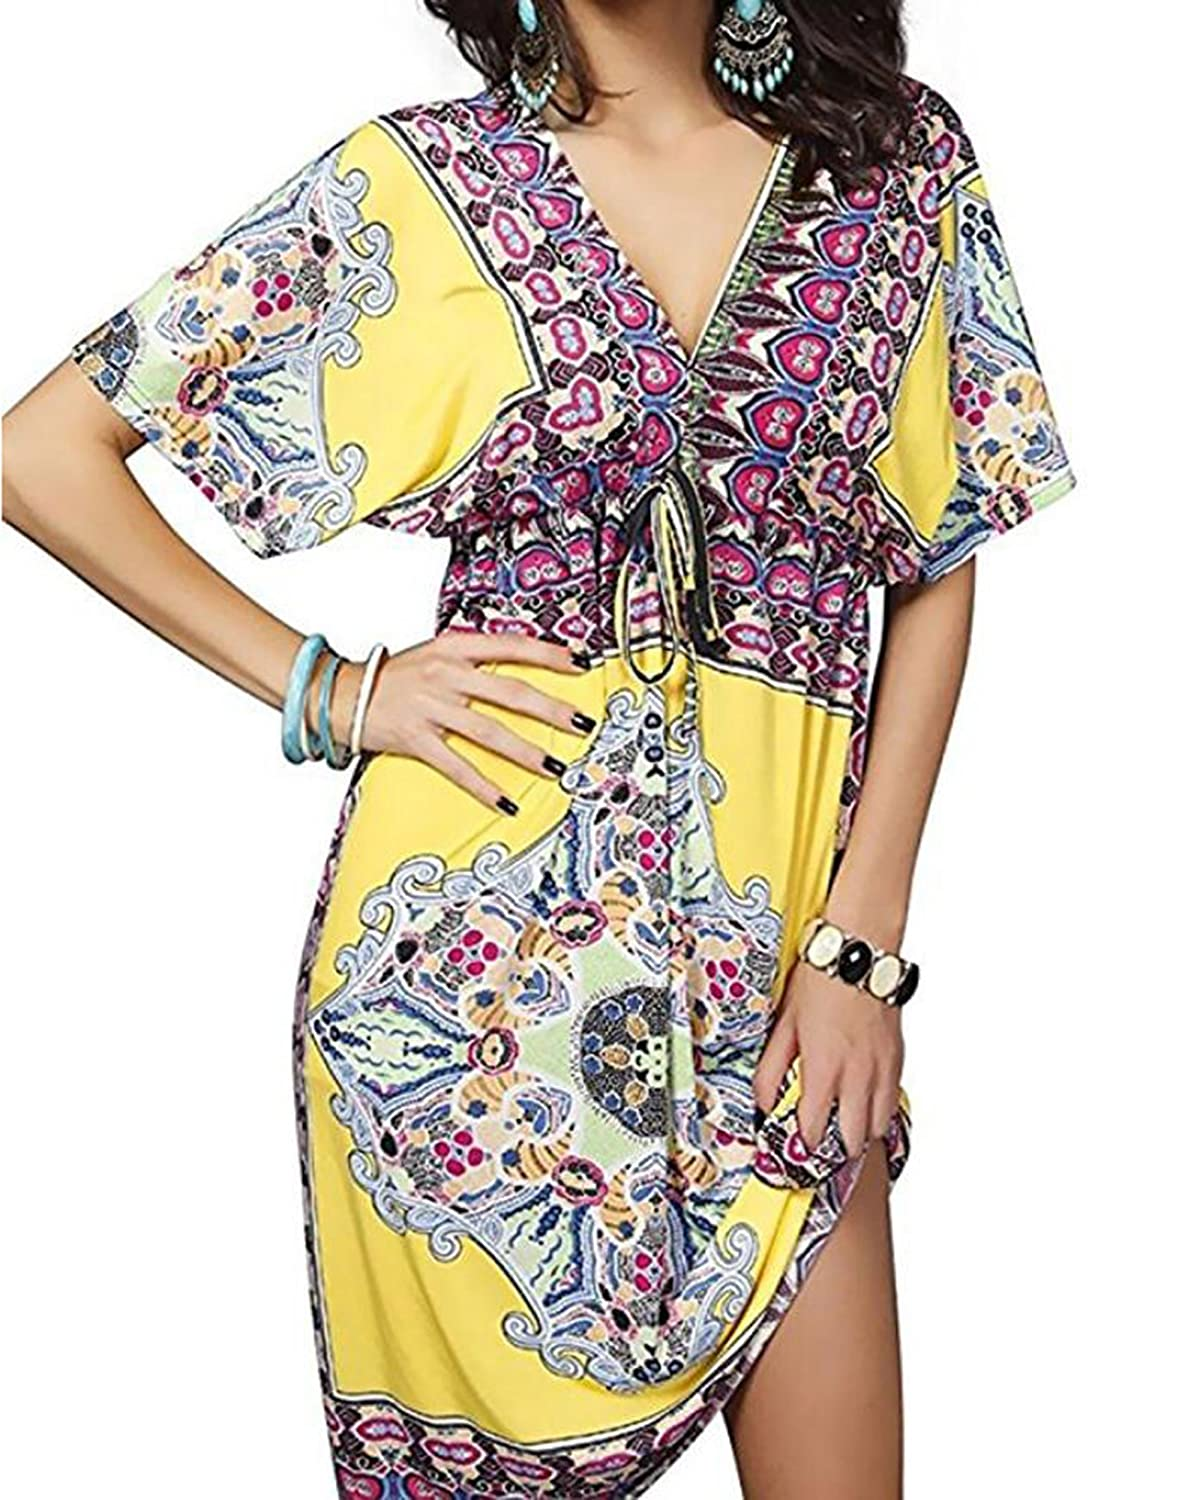 47bc827871 2. amazon prime cover ups Review – LUBERLIN Women's Summer V-Neck Sexy Low  Cut Loose Bikini Swimsuit Cover Ups Bohemia Beach Dress US 4-16